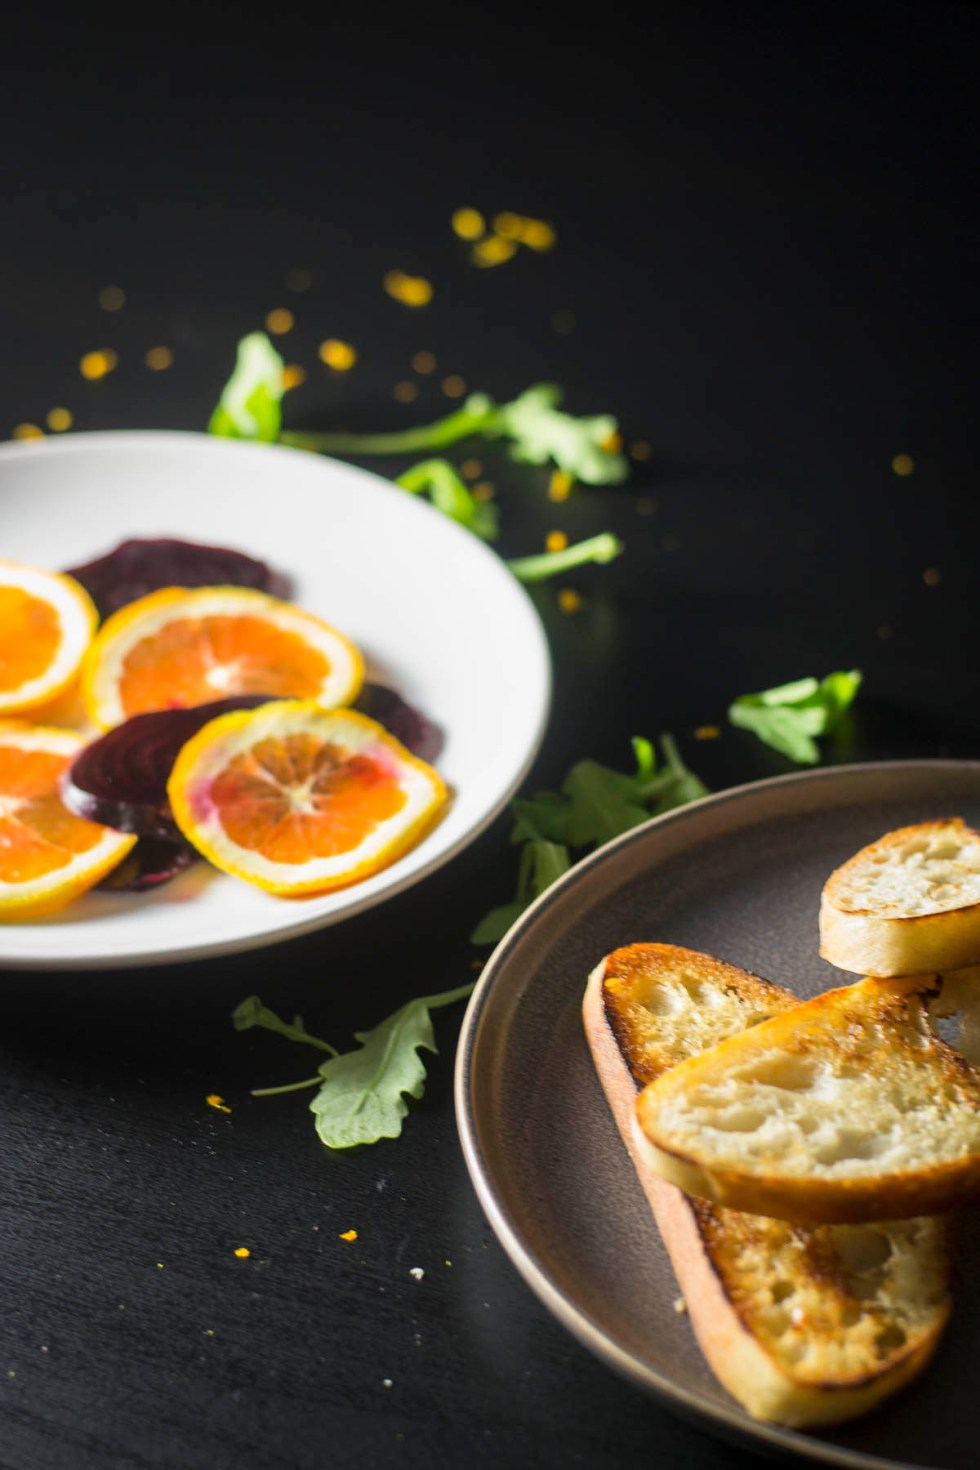 Sliced oranges and toast on plates